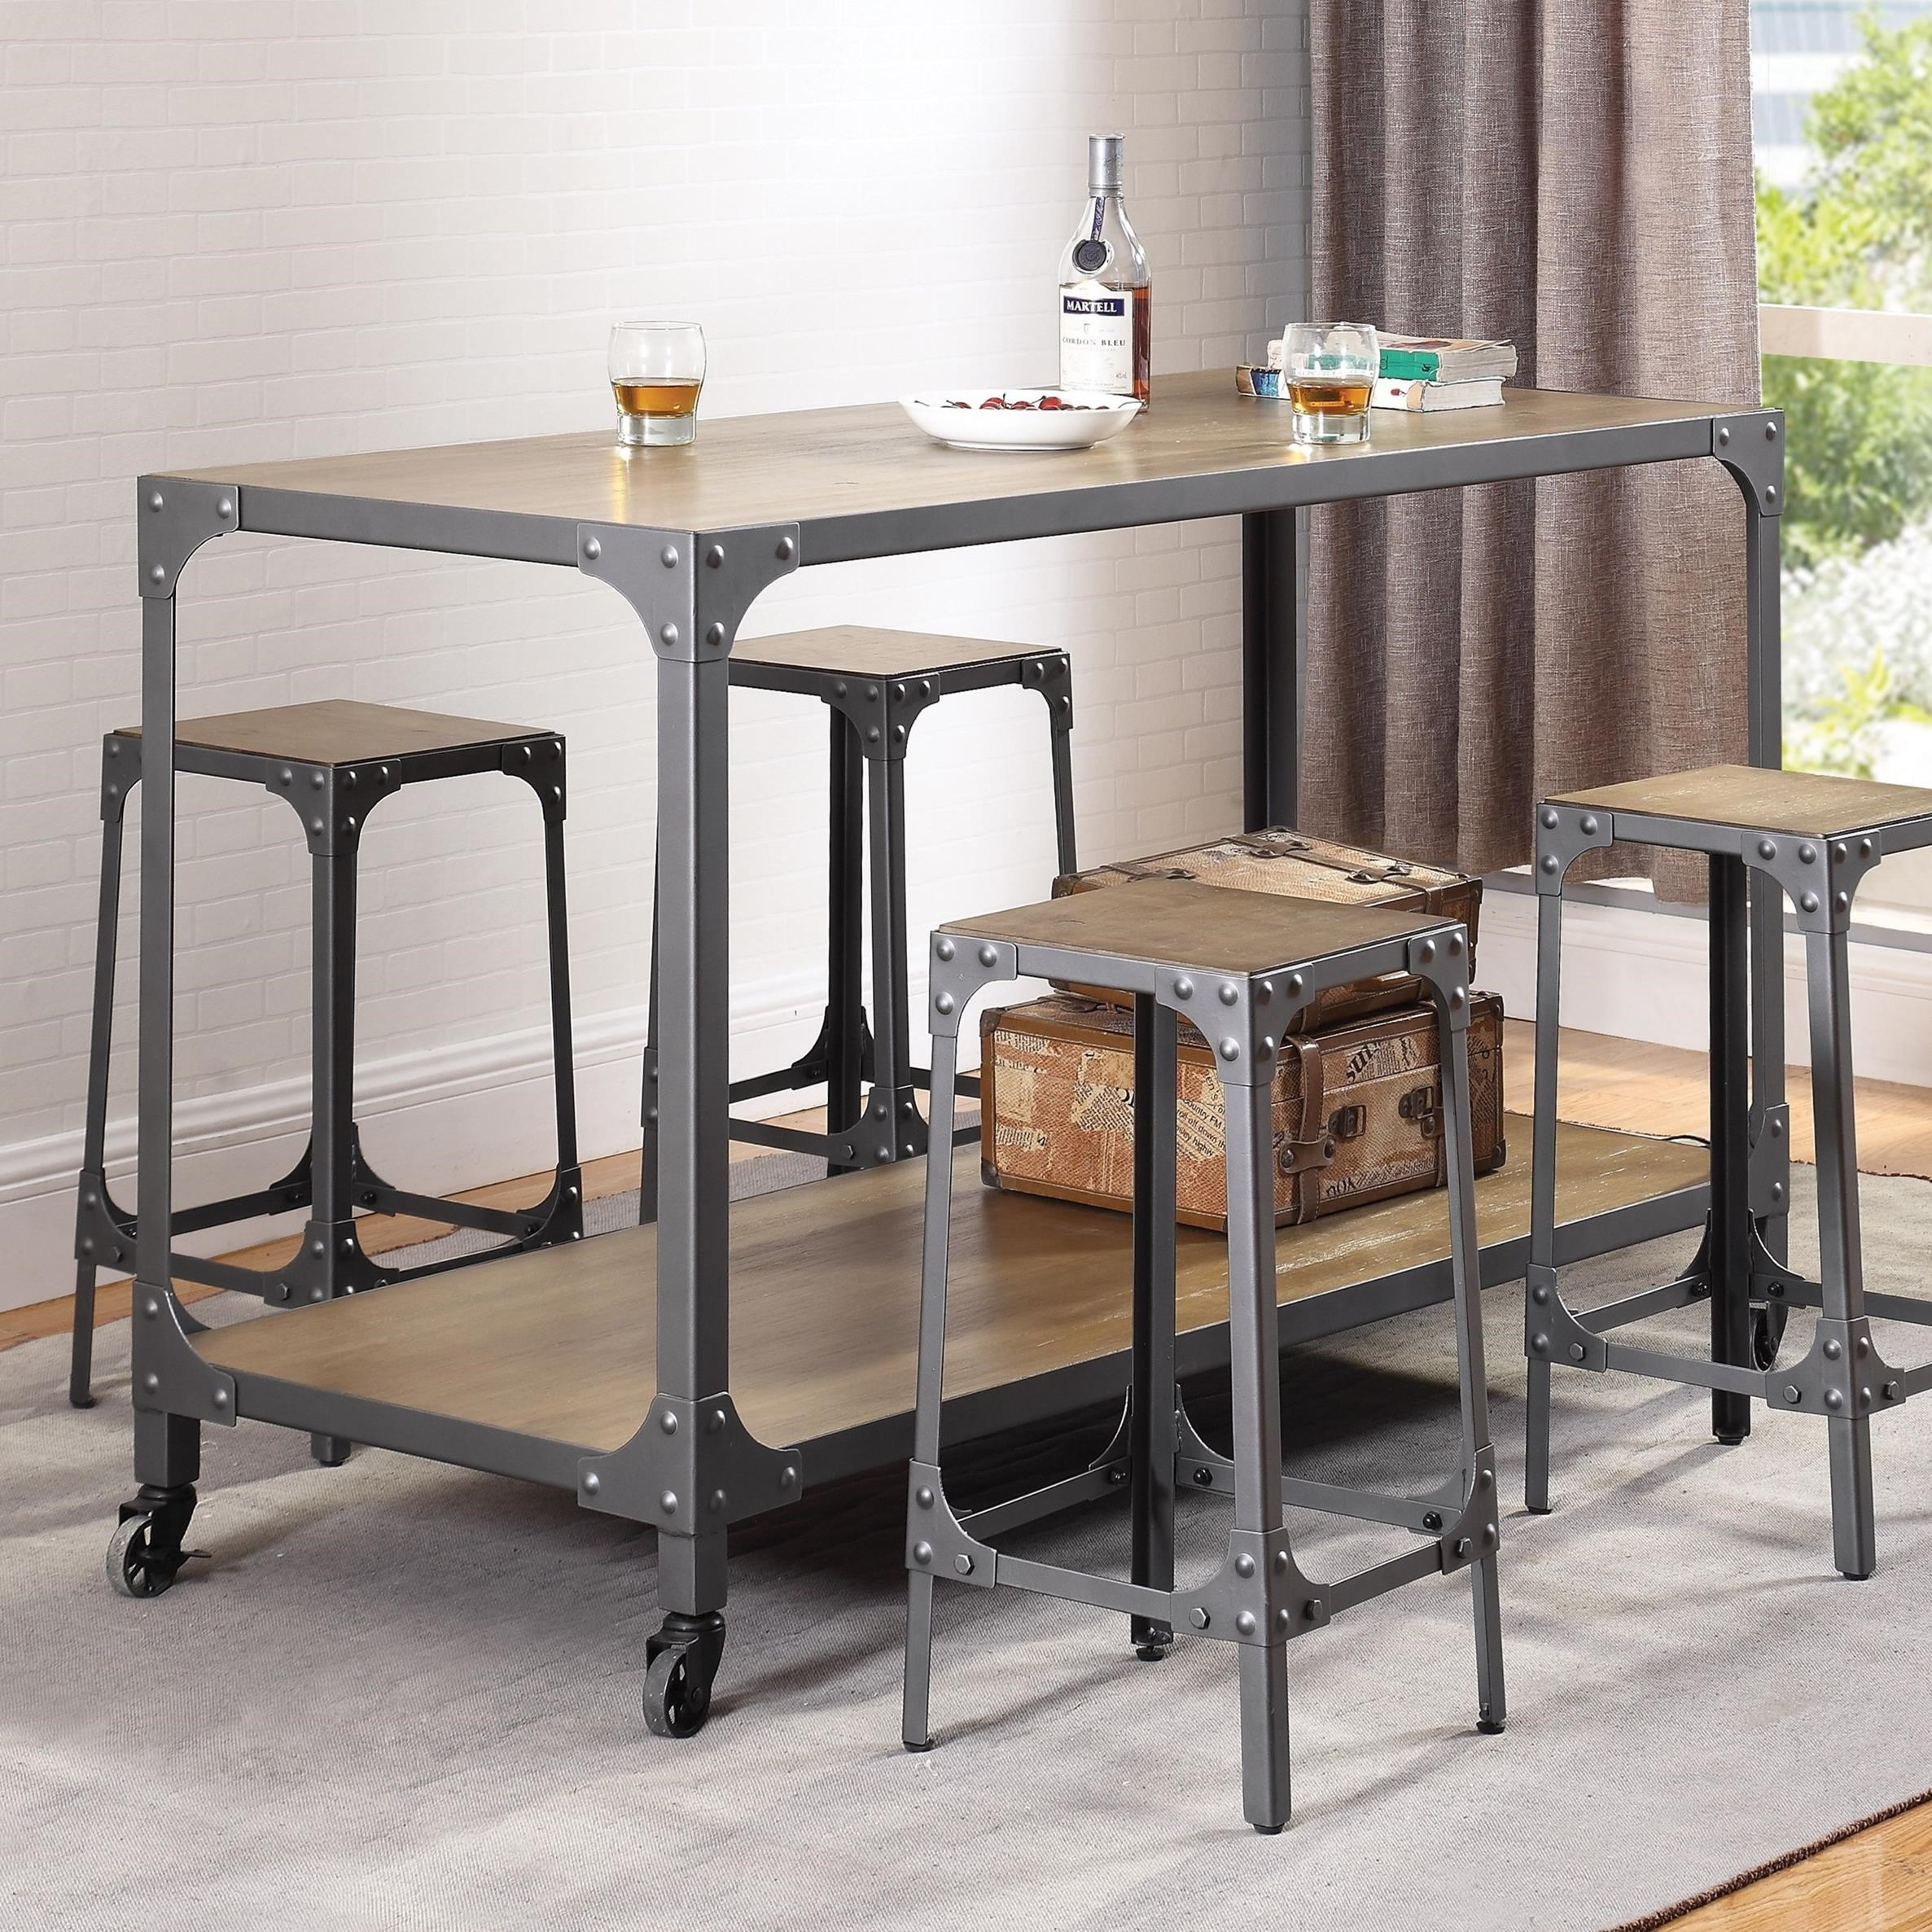 kitchen islands and carts furniture coaster kitchen carts 102998 s5 rustic kitchen island and stools del sol furniture kitchen 4744